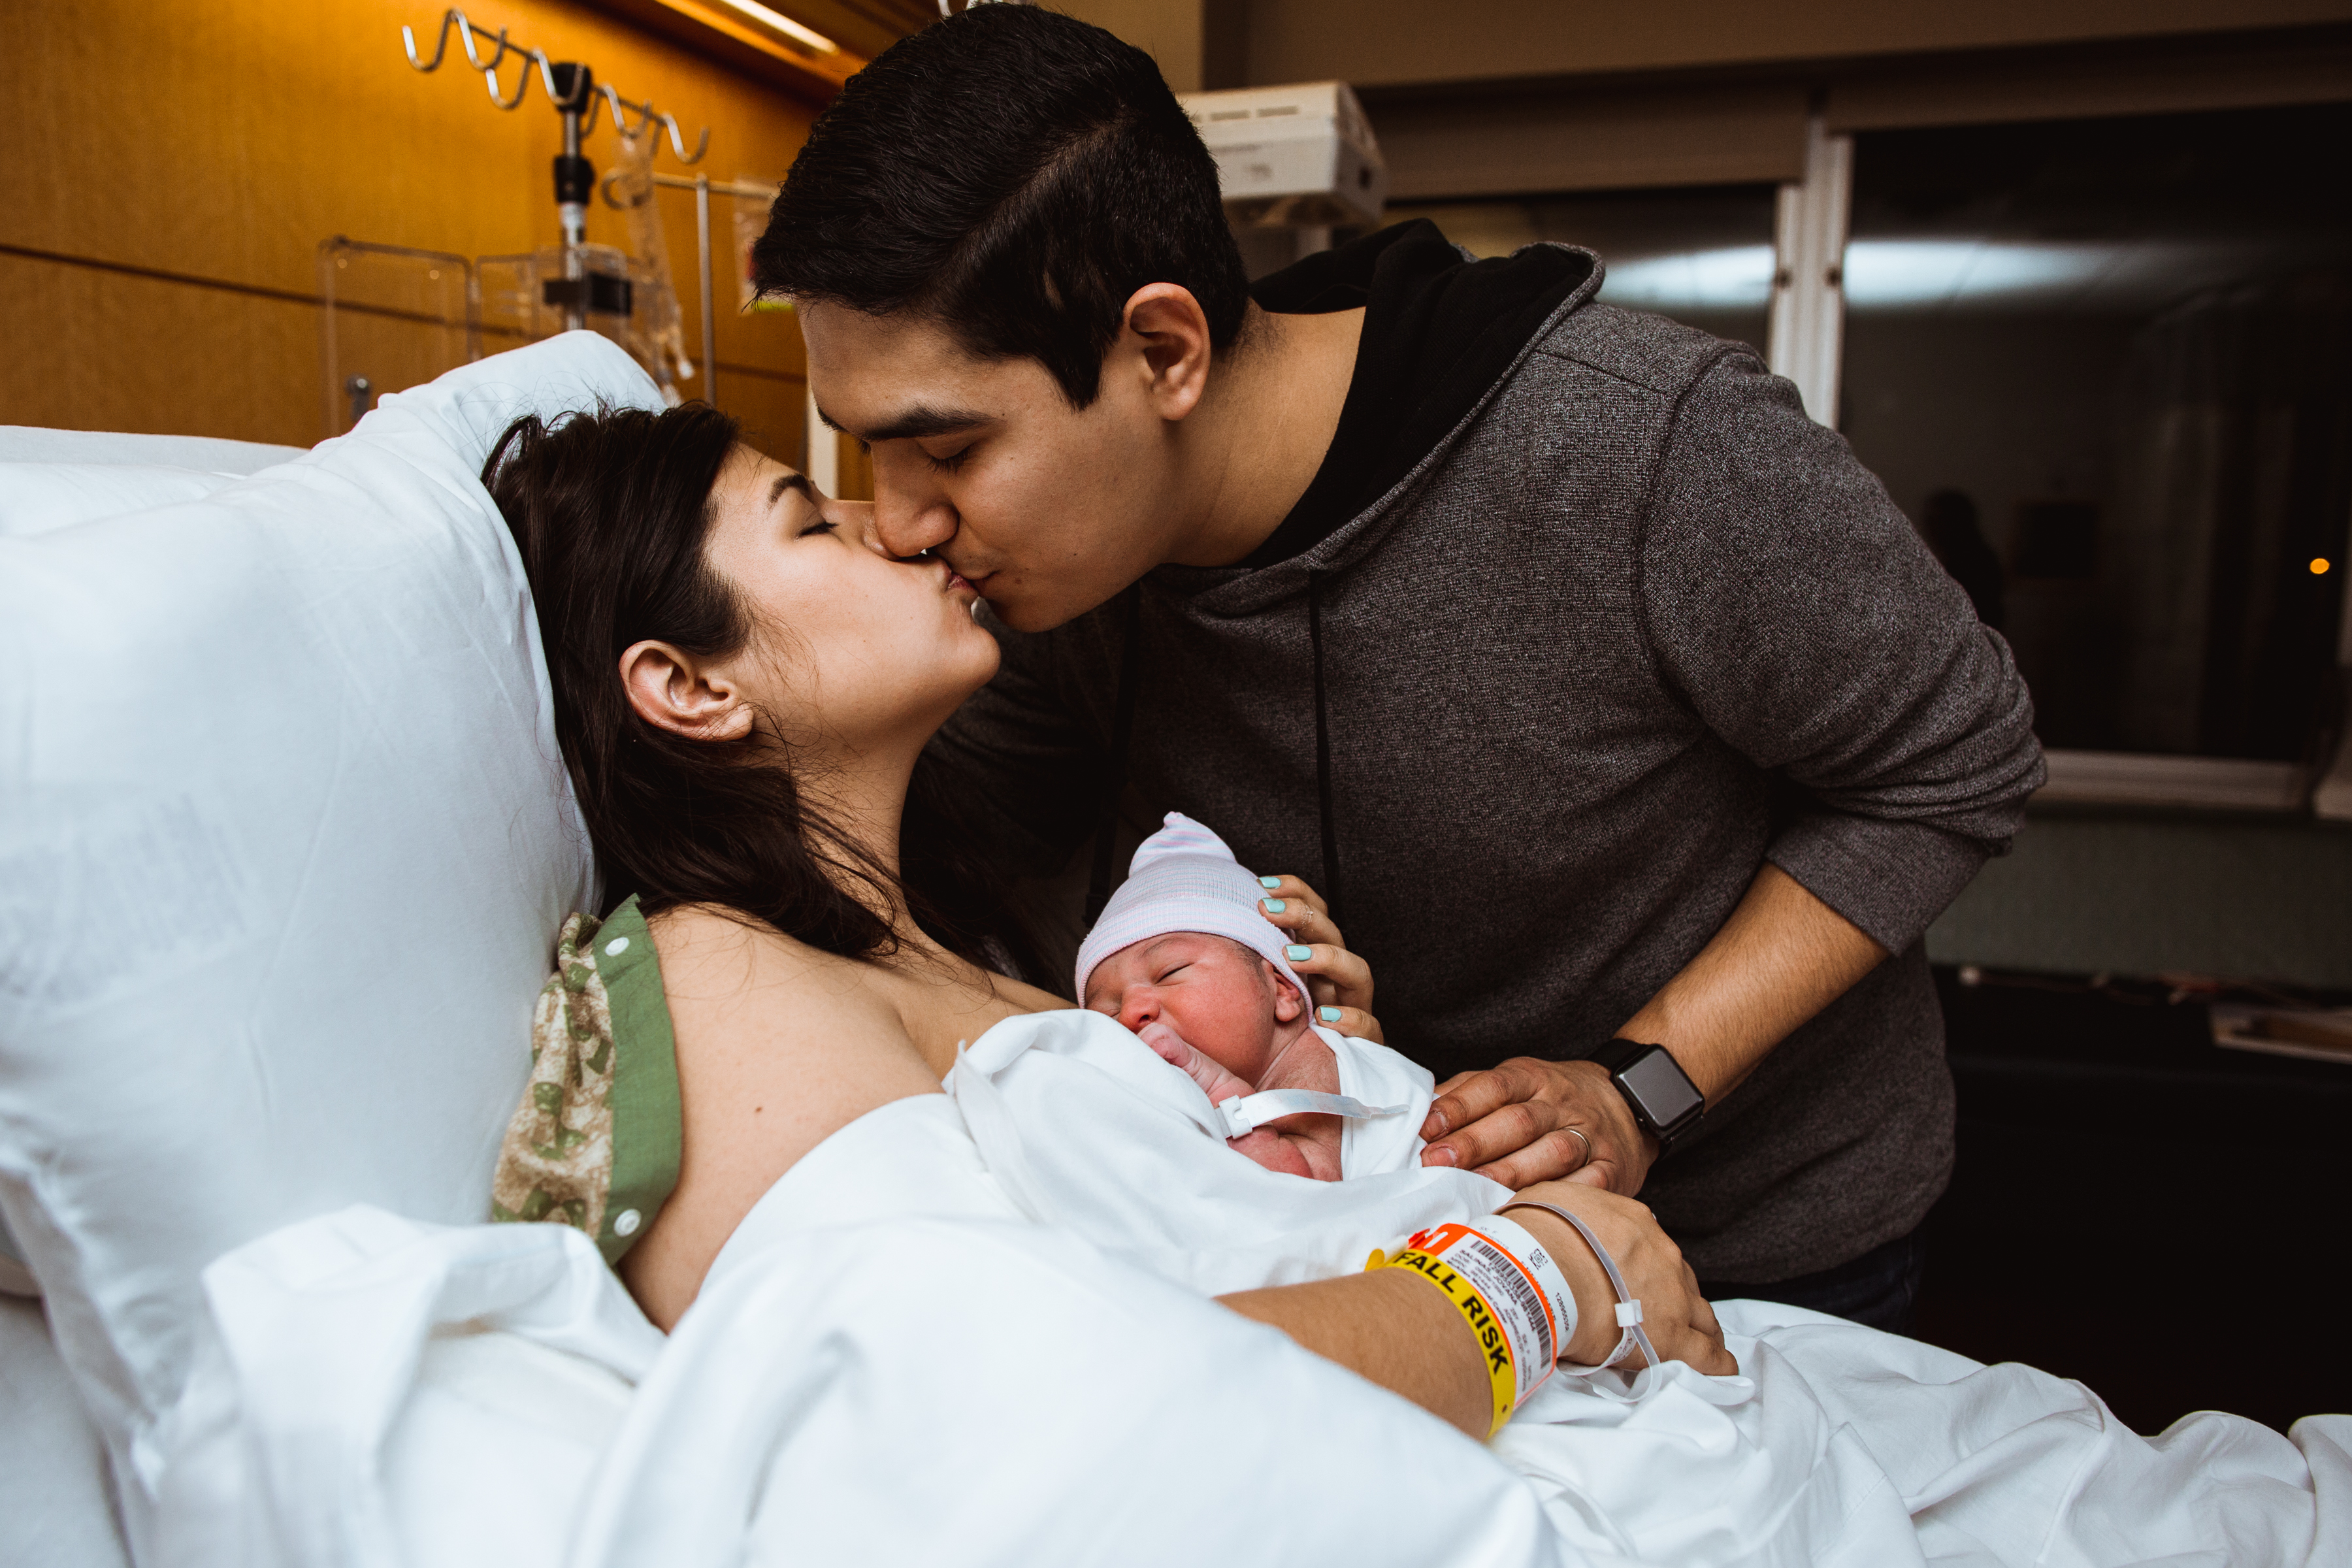 New-father-kisses-his-partner-on-the-lips-as-she-holds-their-new-born-baby-boy-on-her-chest